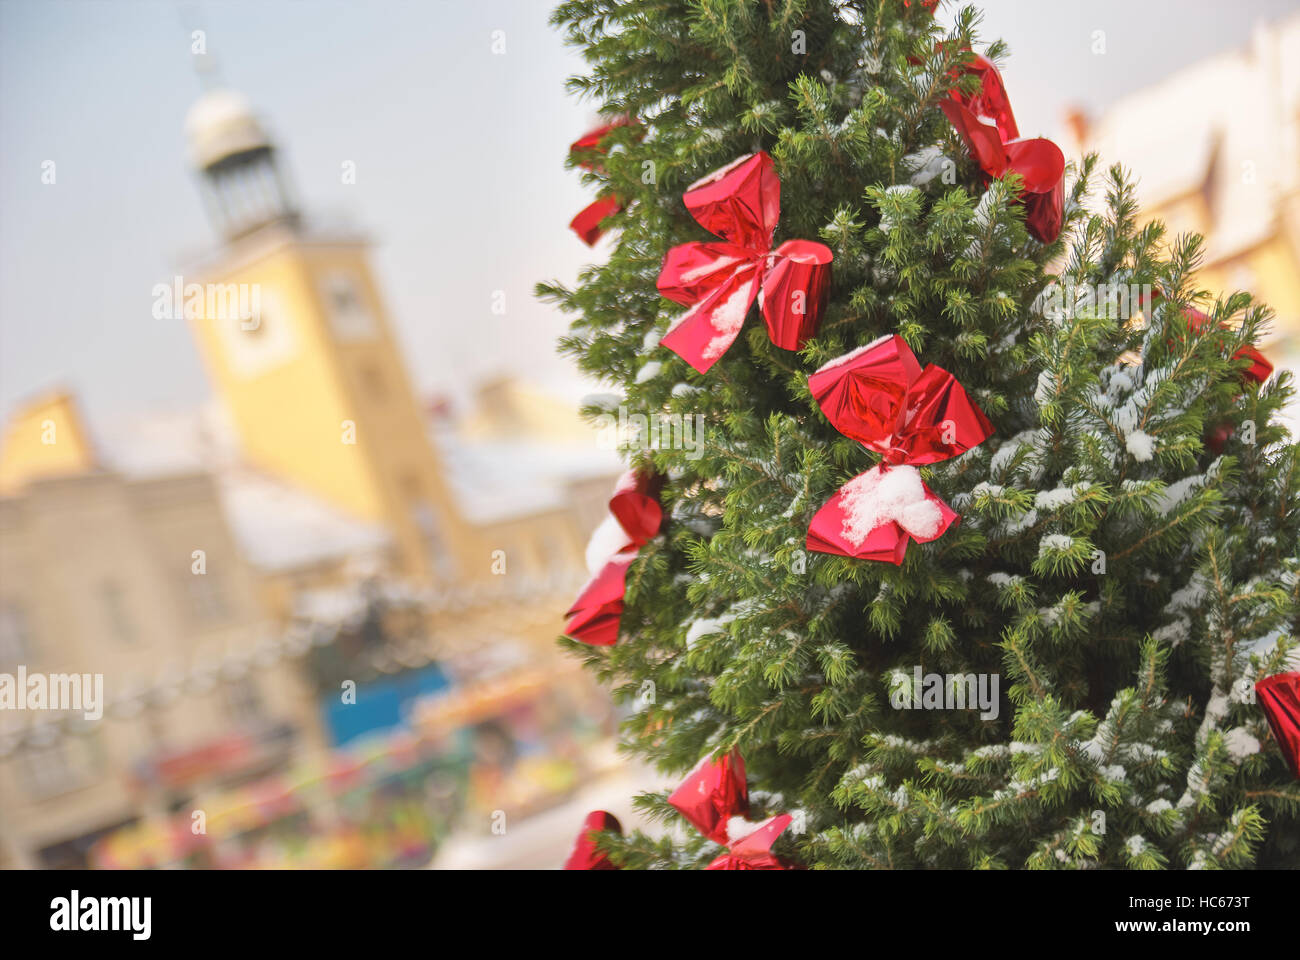 Large outdoor Christmas tree in Rybnik Poland Stock Photo